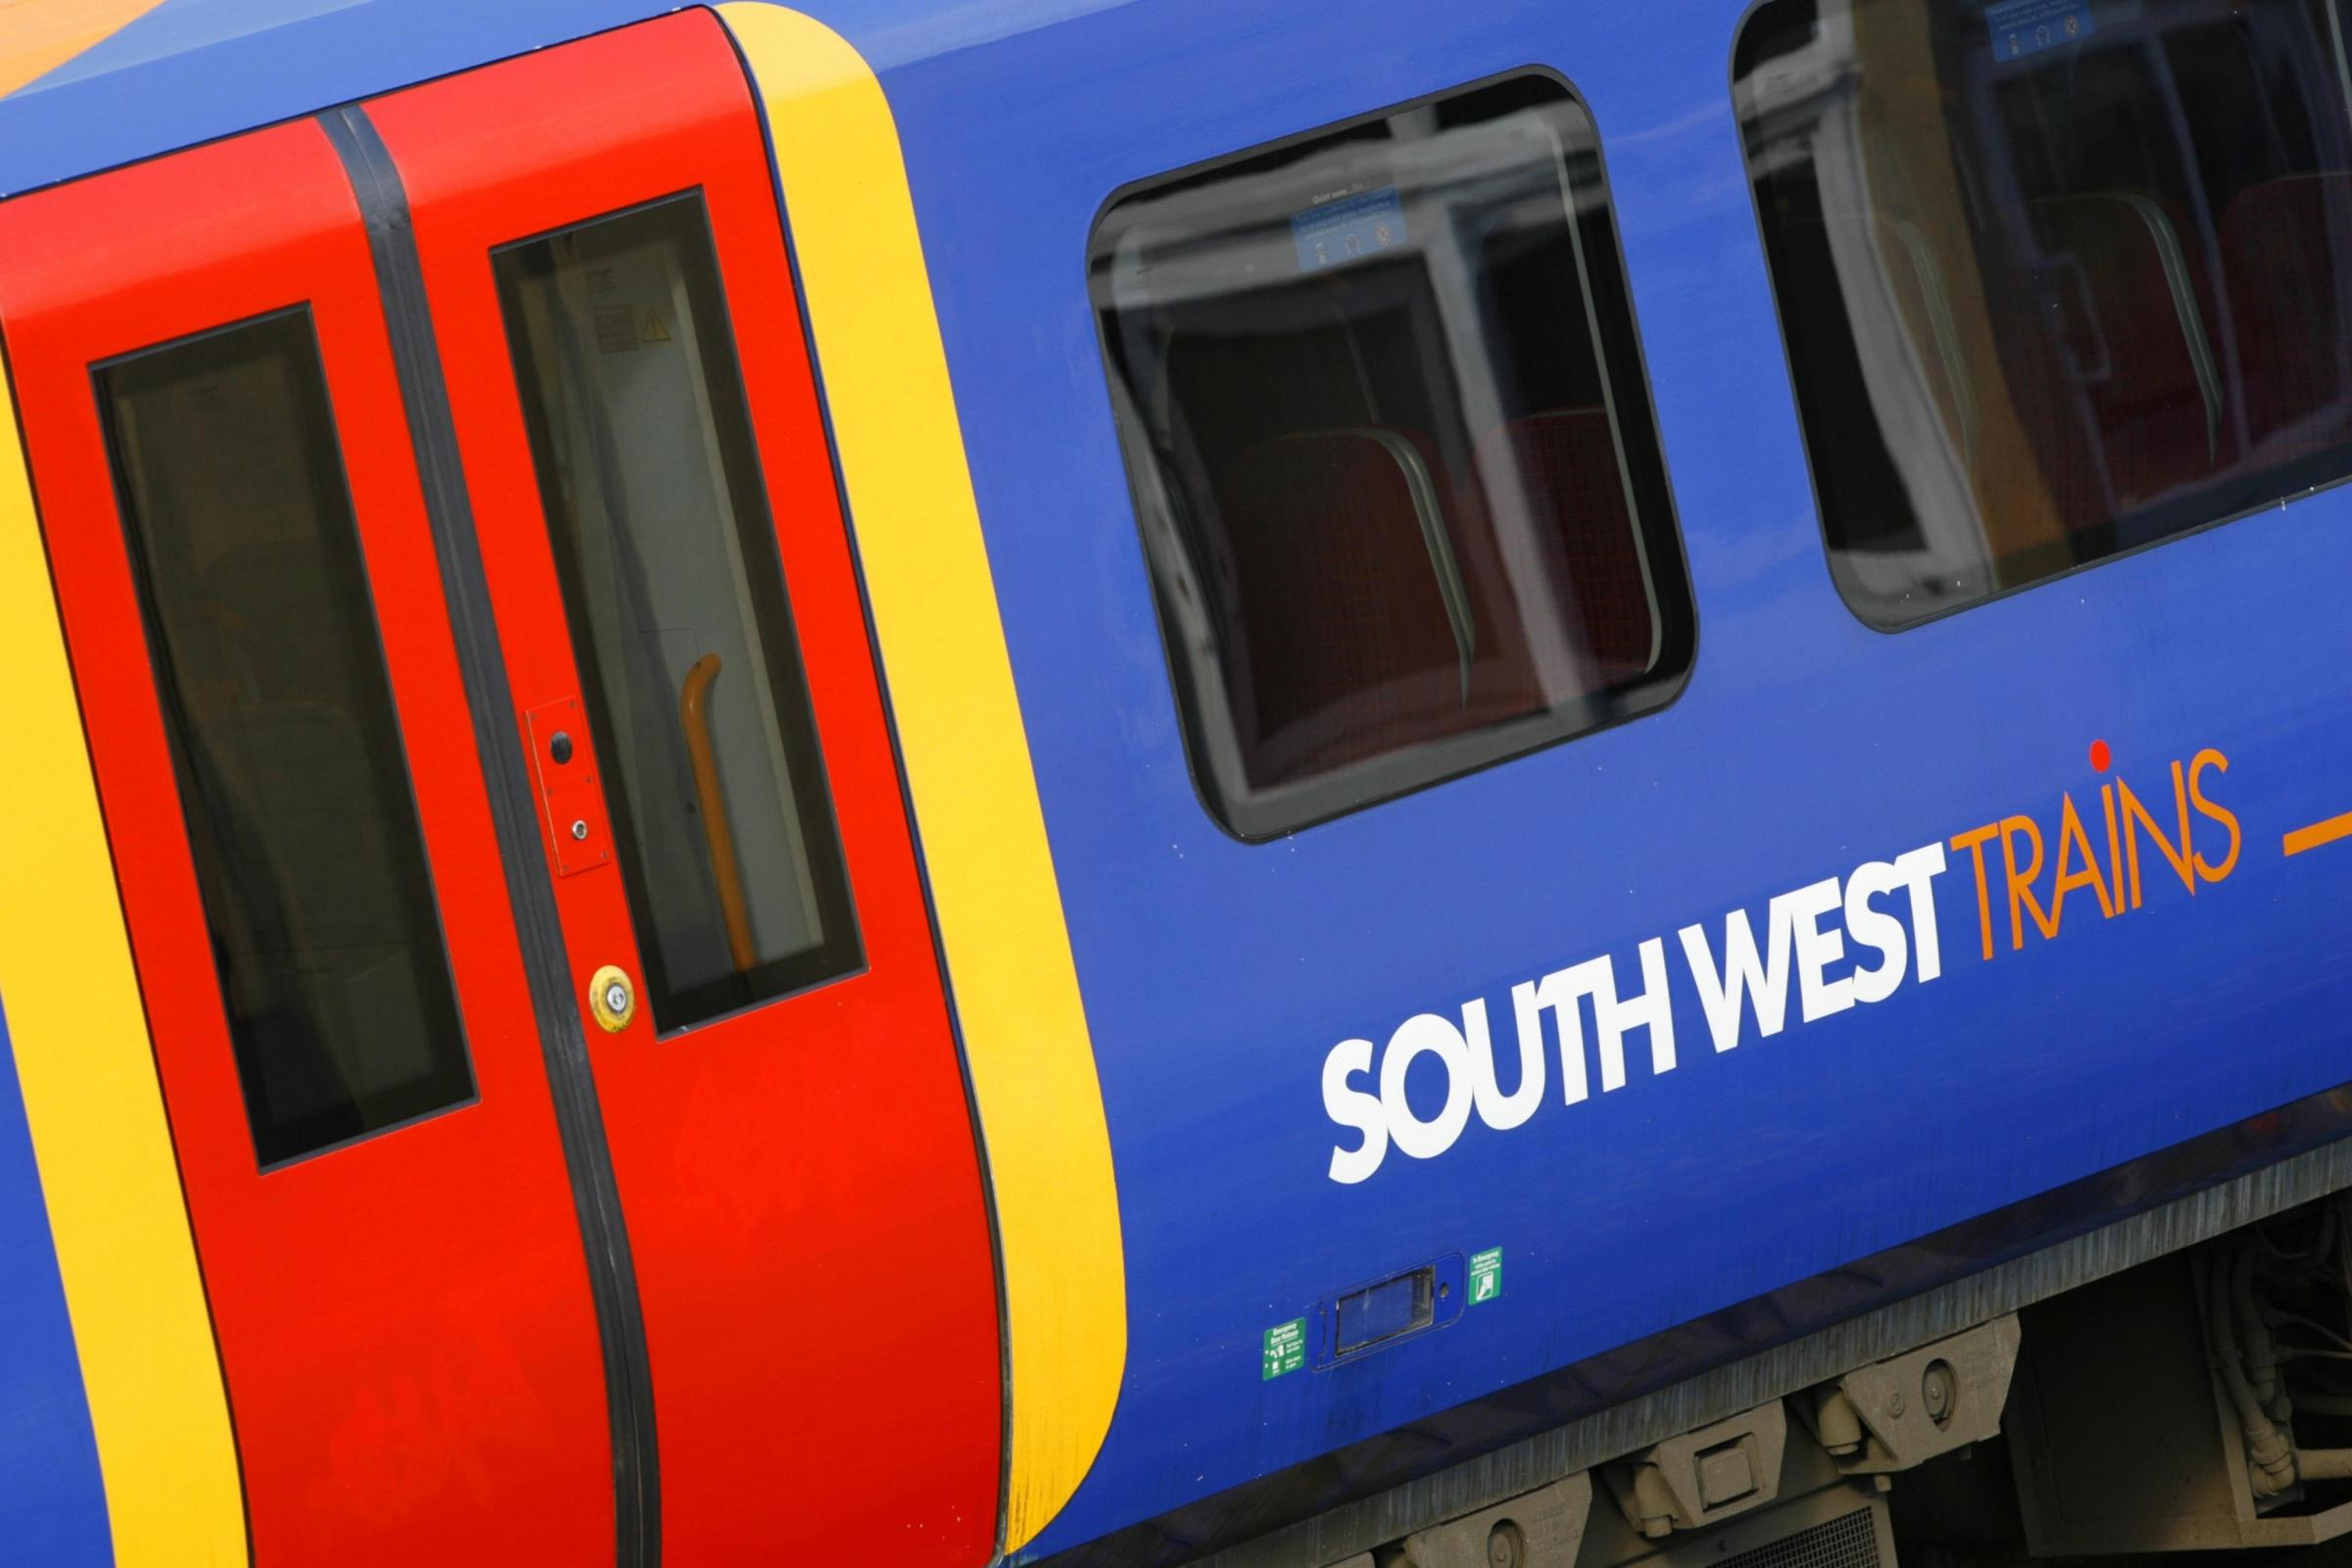 Police launch crackdown on drug dealers using trains